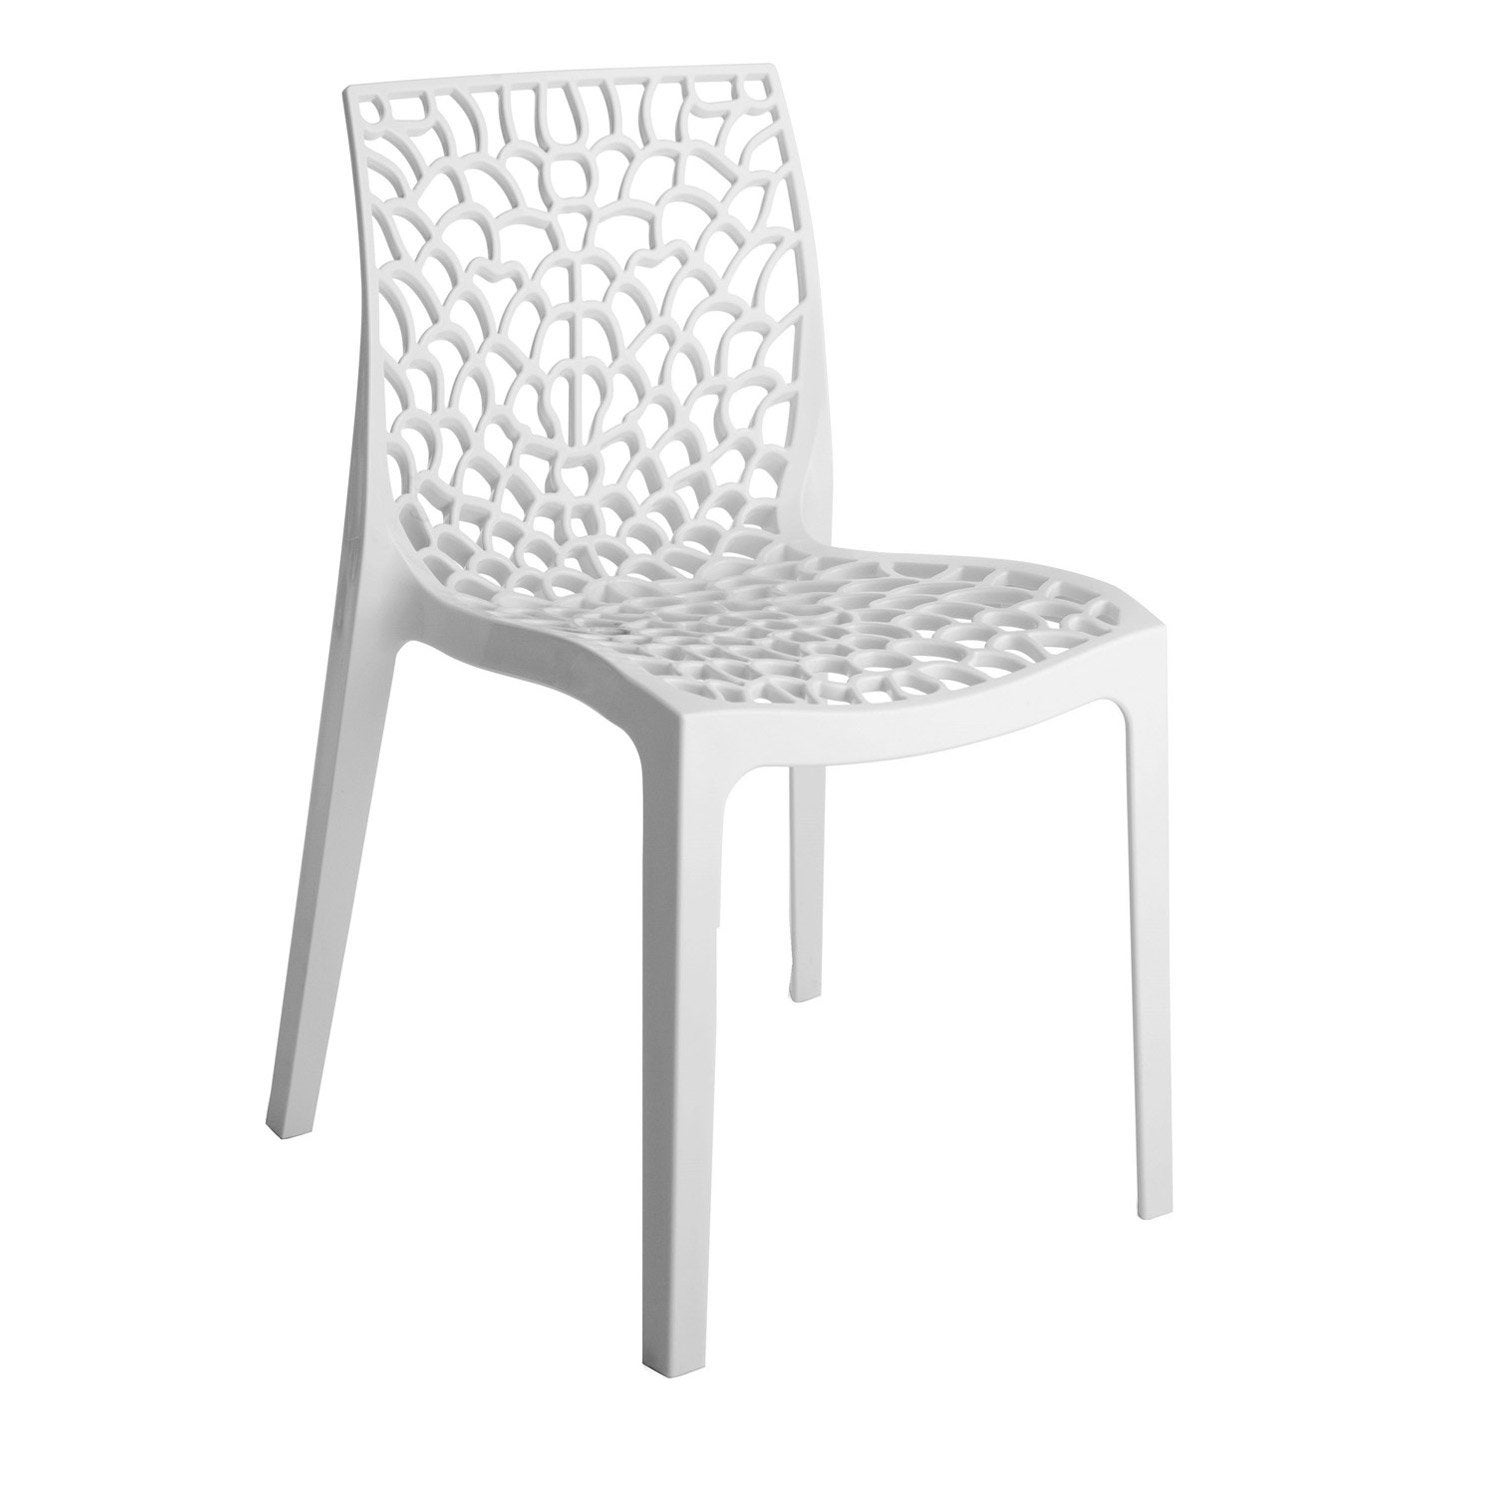 Chaise de jardin en r sine grafik blanc leroy merlin for Chaise longue leroy merlin